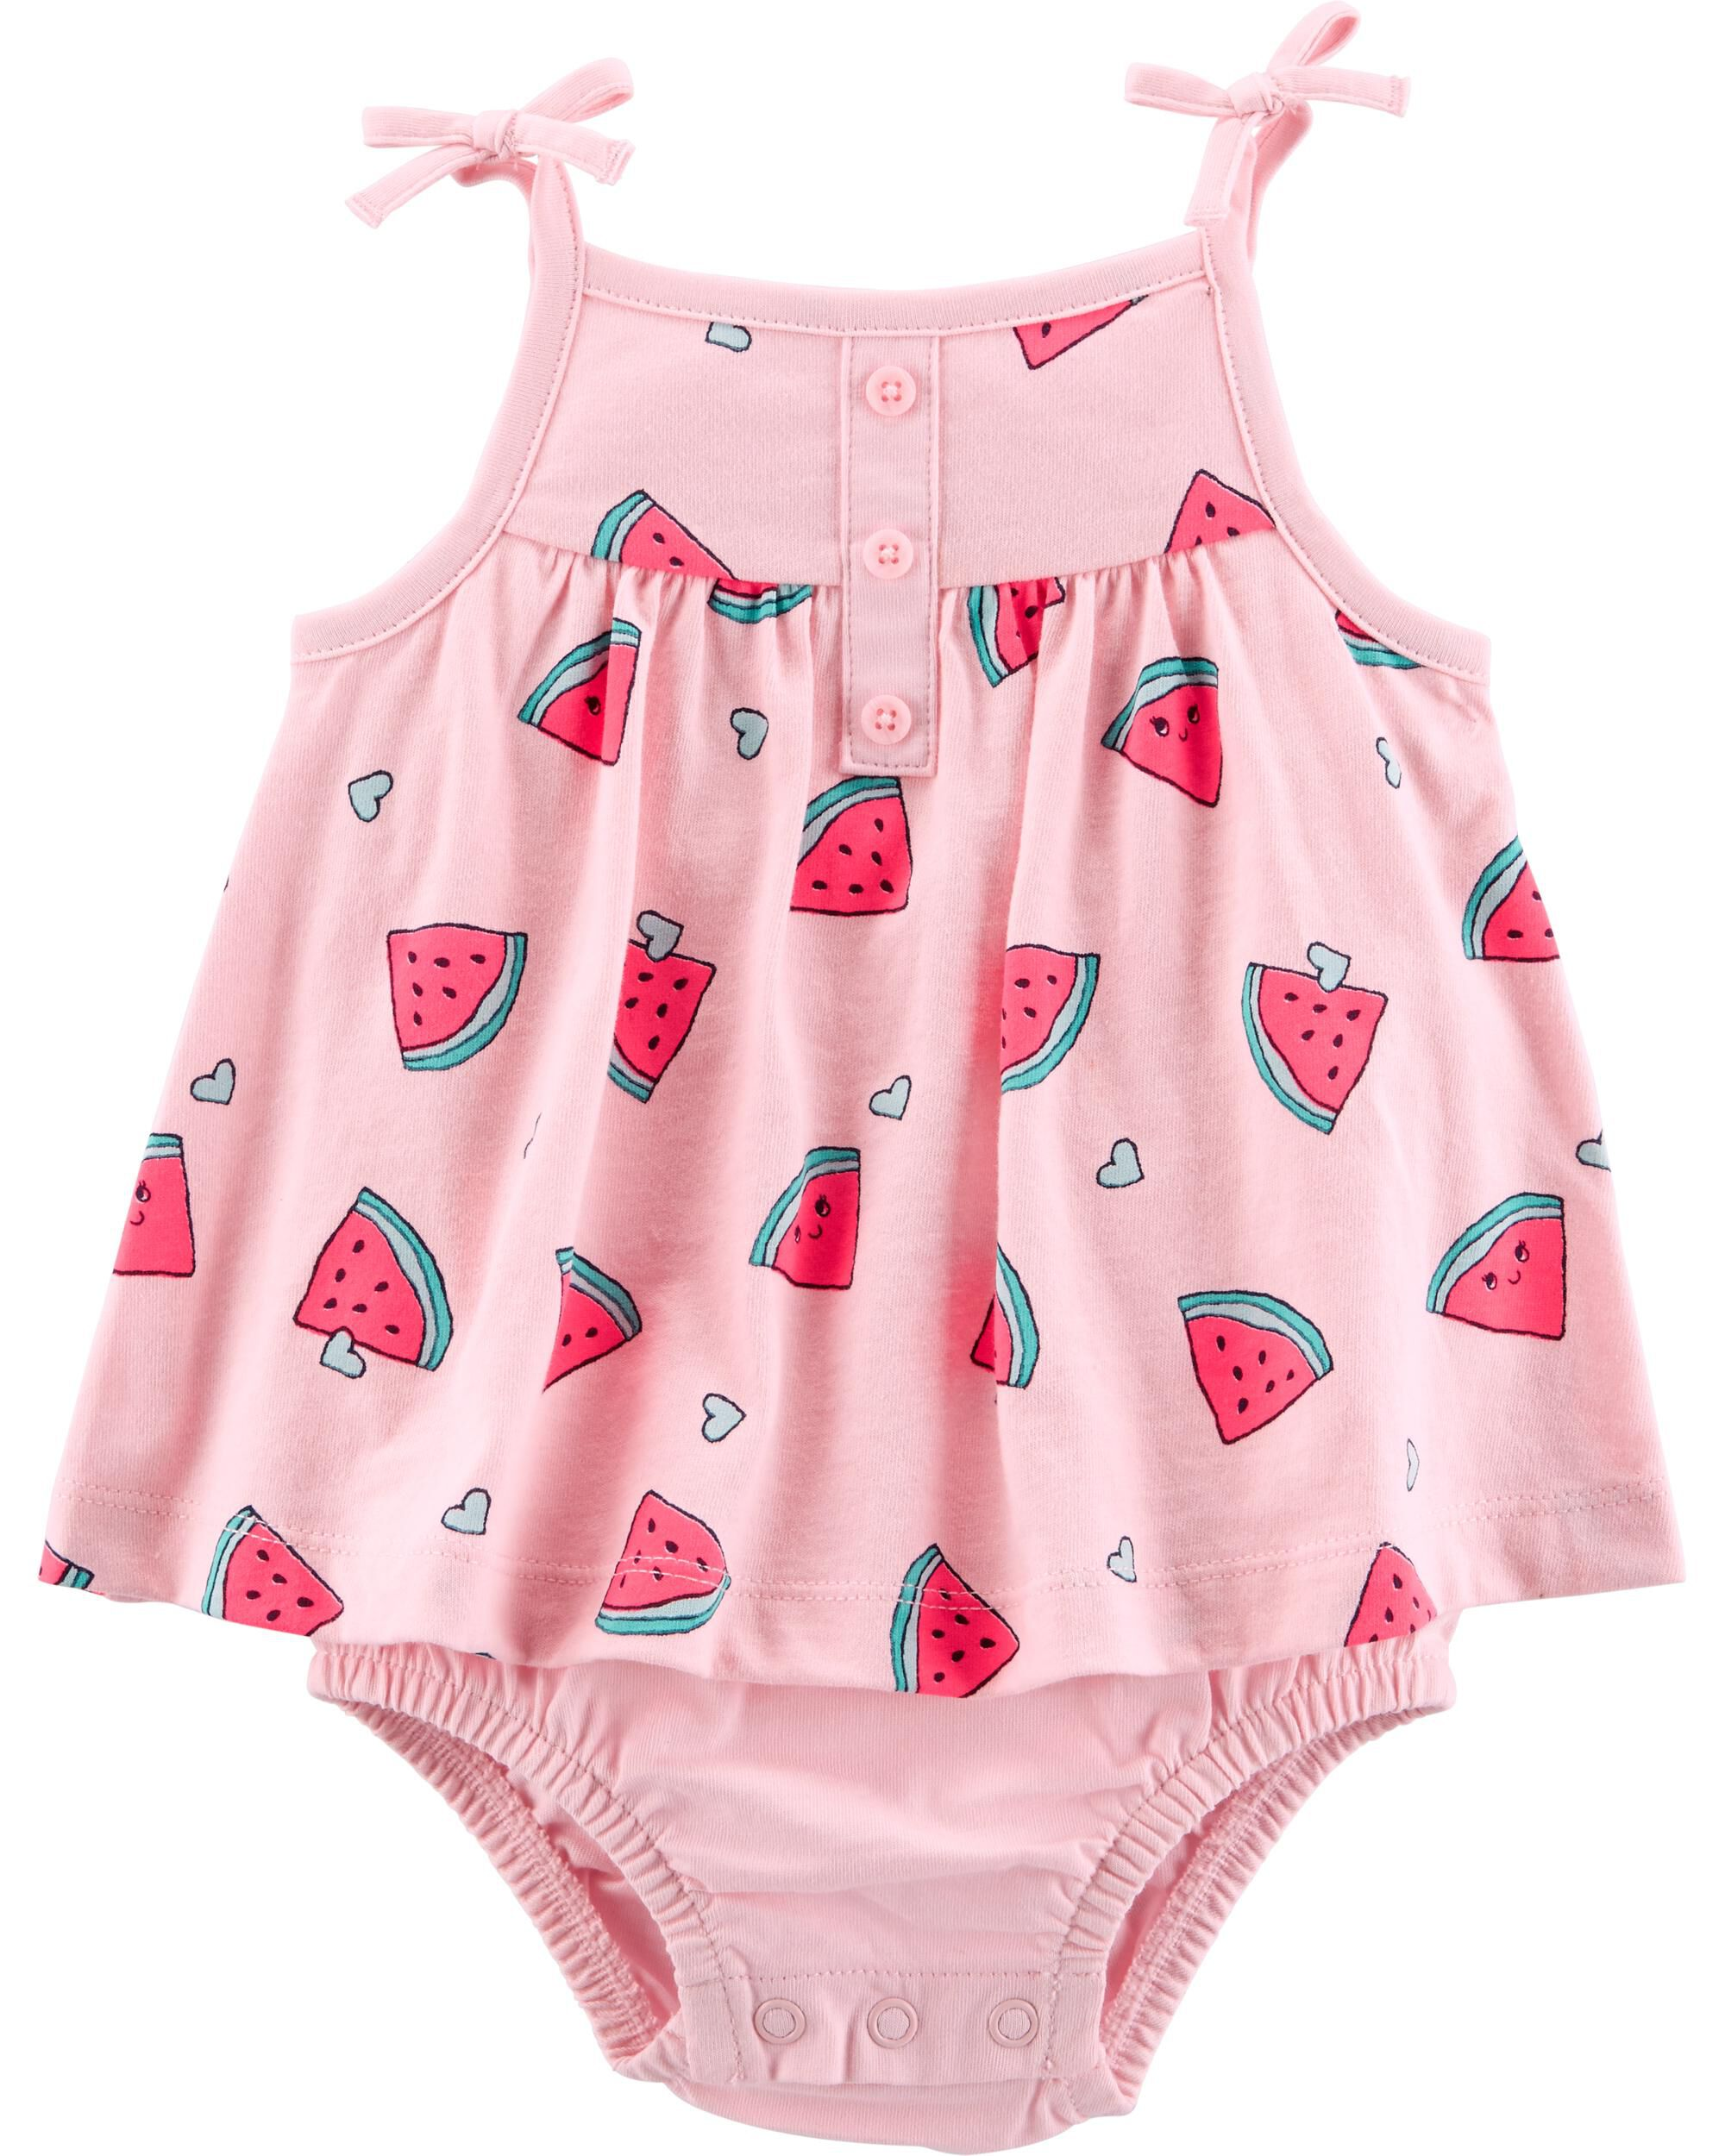 Cheap Price 0-3 Months Baby Girl Tutu And Cardigan Top Watermelons Clothes, Shoes & Accessories